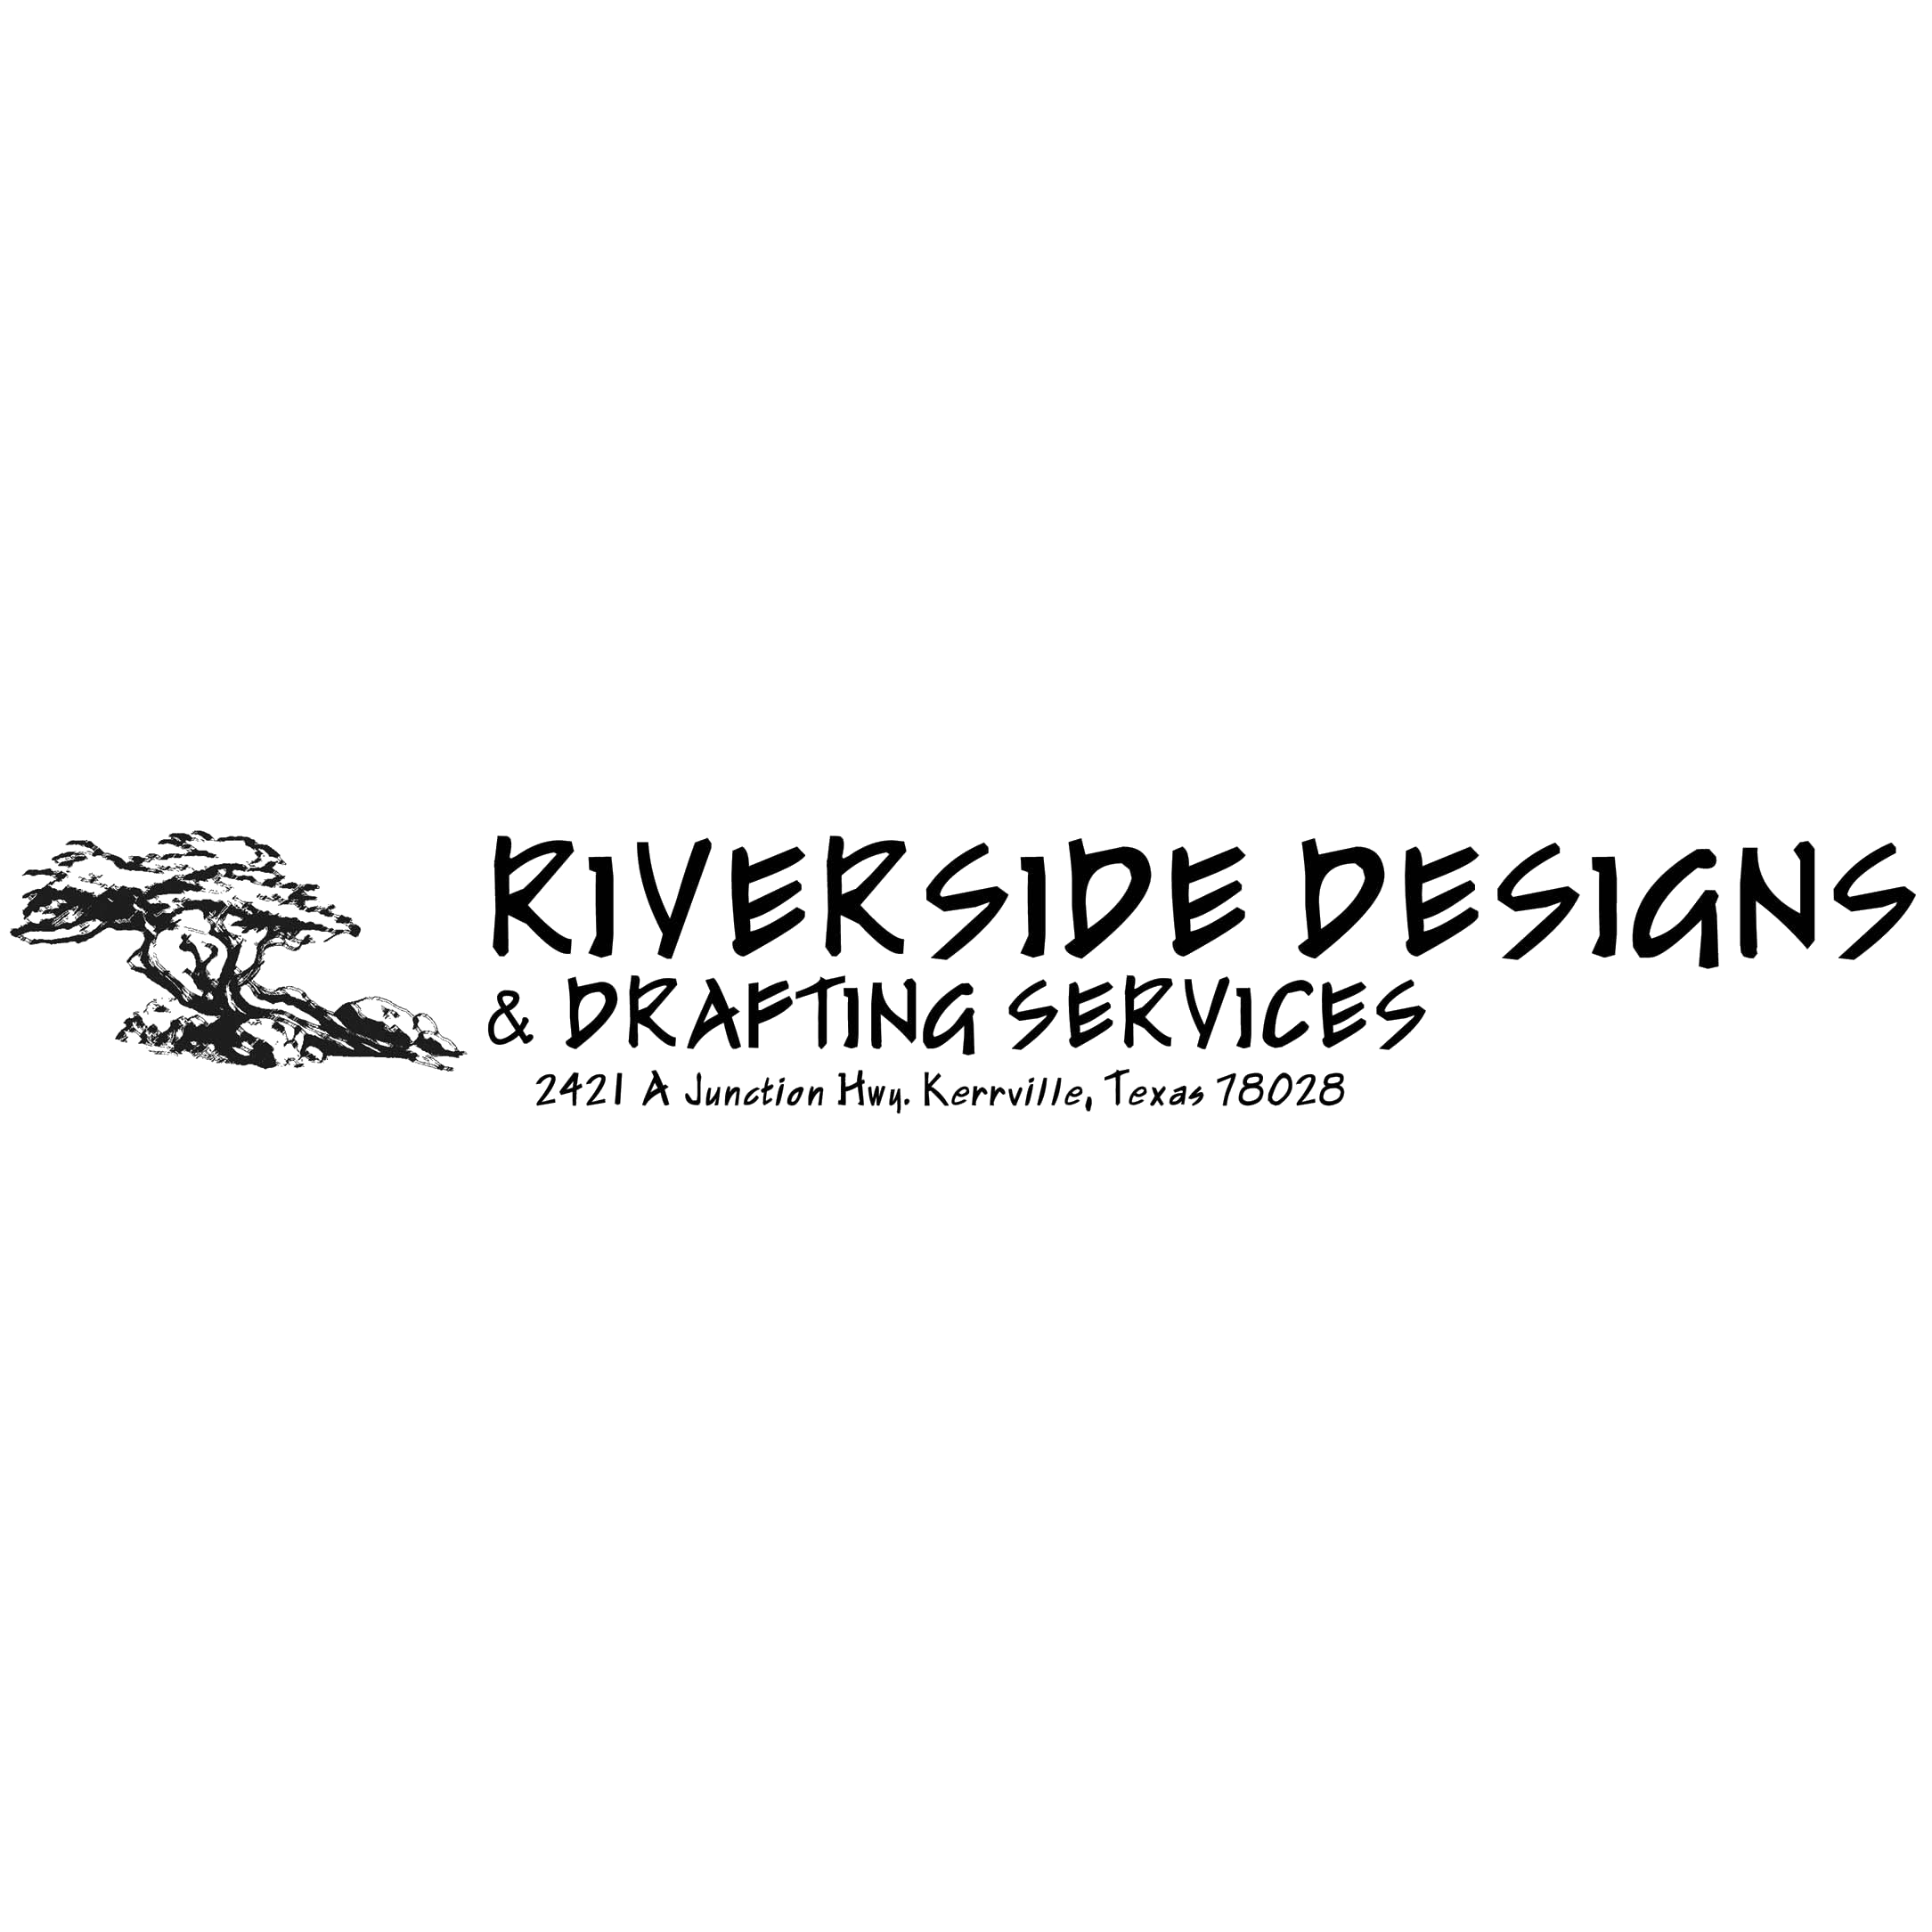 Riverside Home Designs and Drafting Services